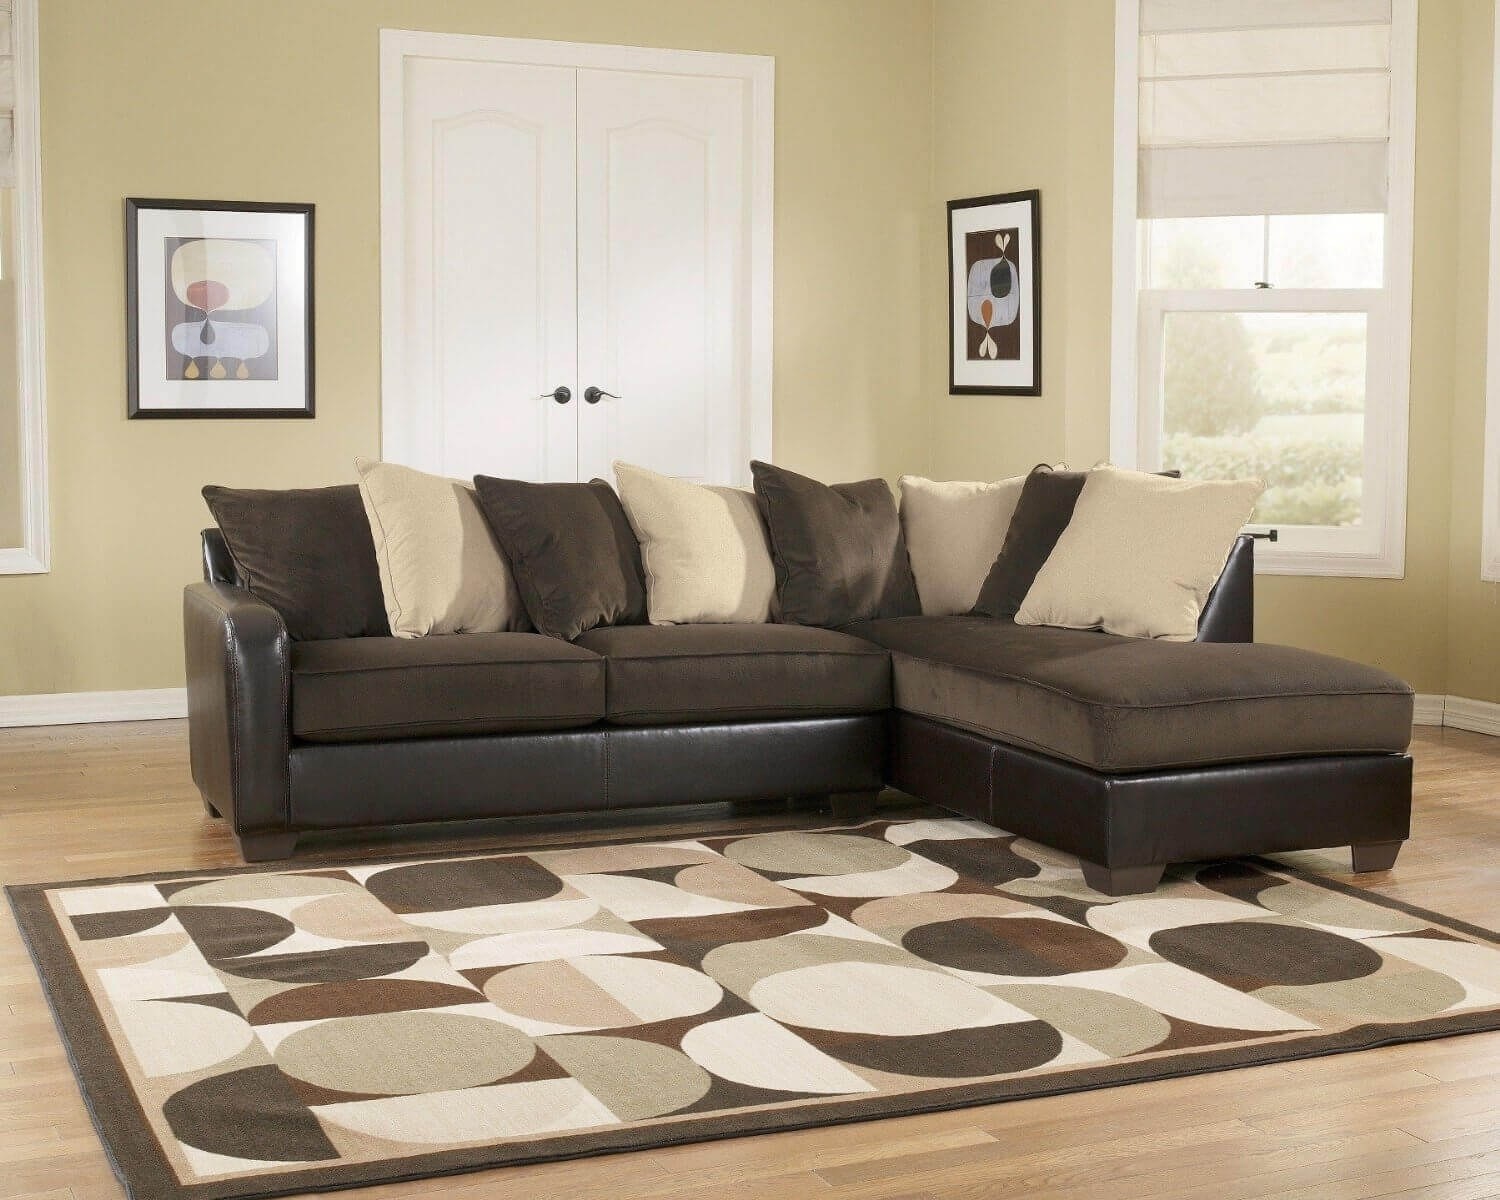 100 Awesome Sectional Sofas Under $1,000 (2018) Inside Chocolate Brown Sectional Sofas (Image 1 of 10)